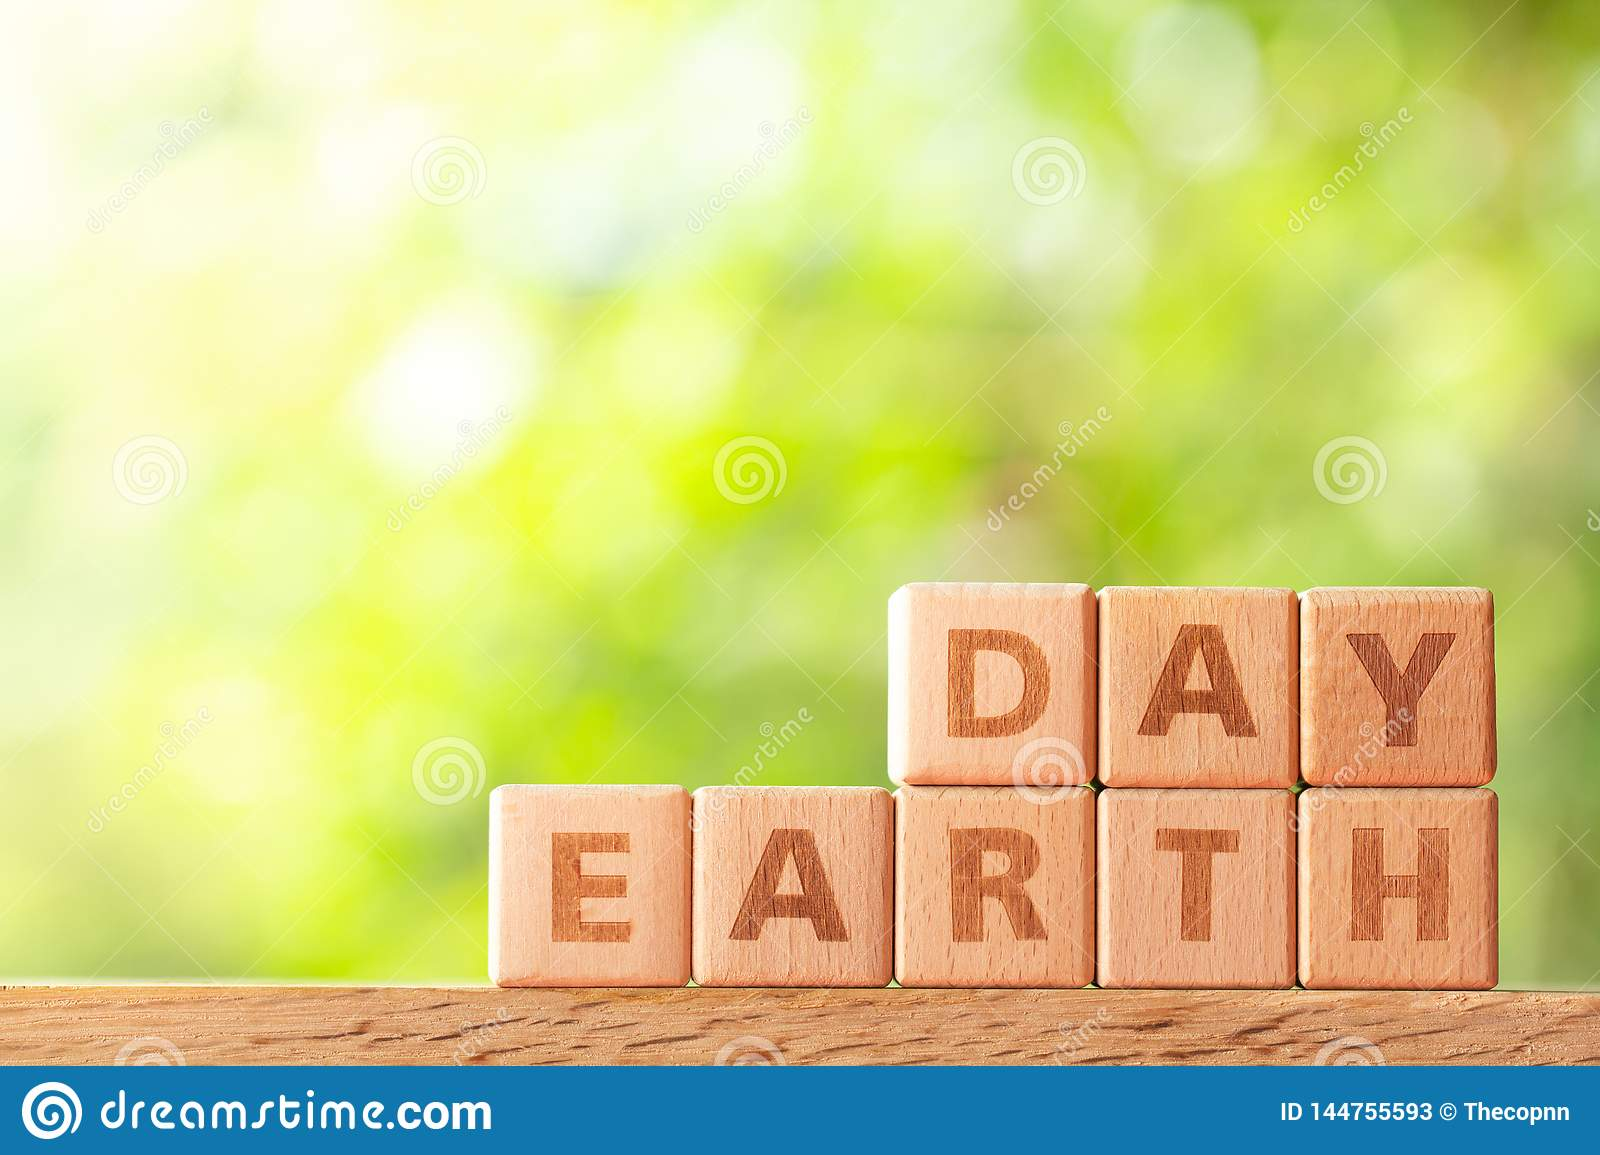 Word earth day written on wooden block on wood table